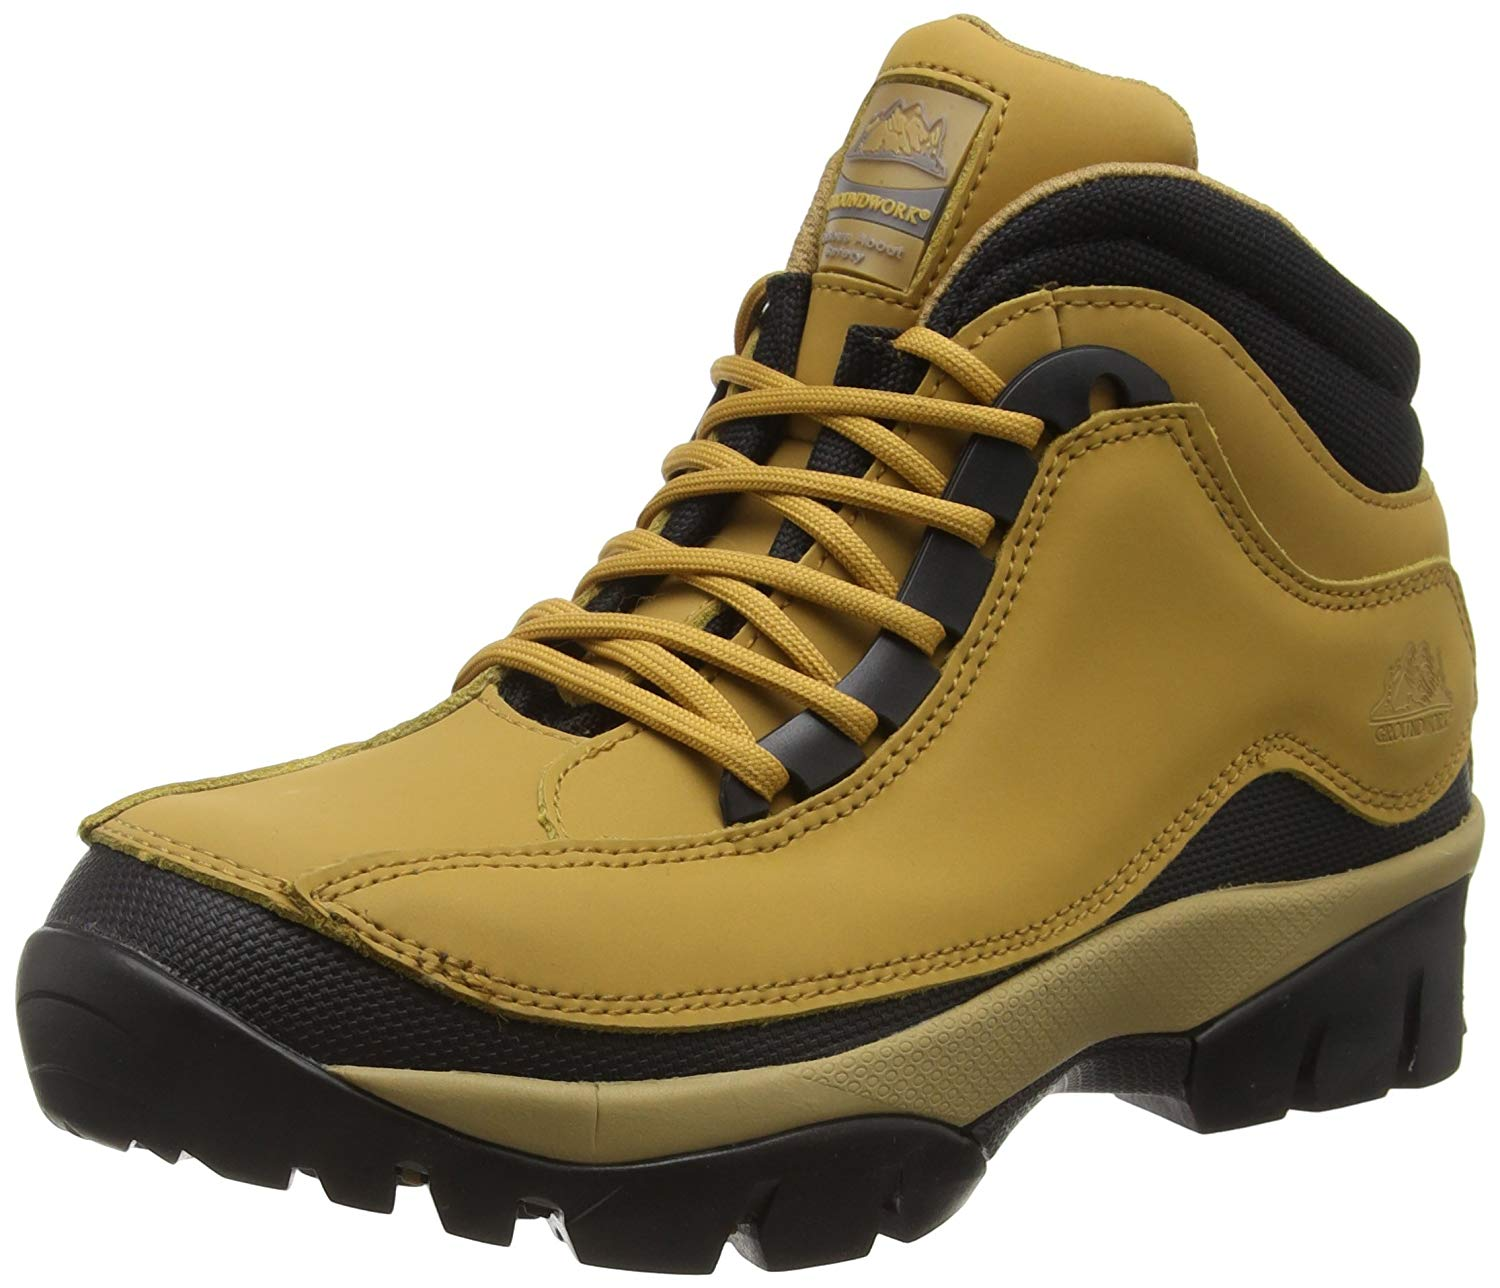 3f56715b7fa Cheap Groundwork Safety Boots, find Groundwork Safety Boots deals on ...